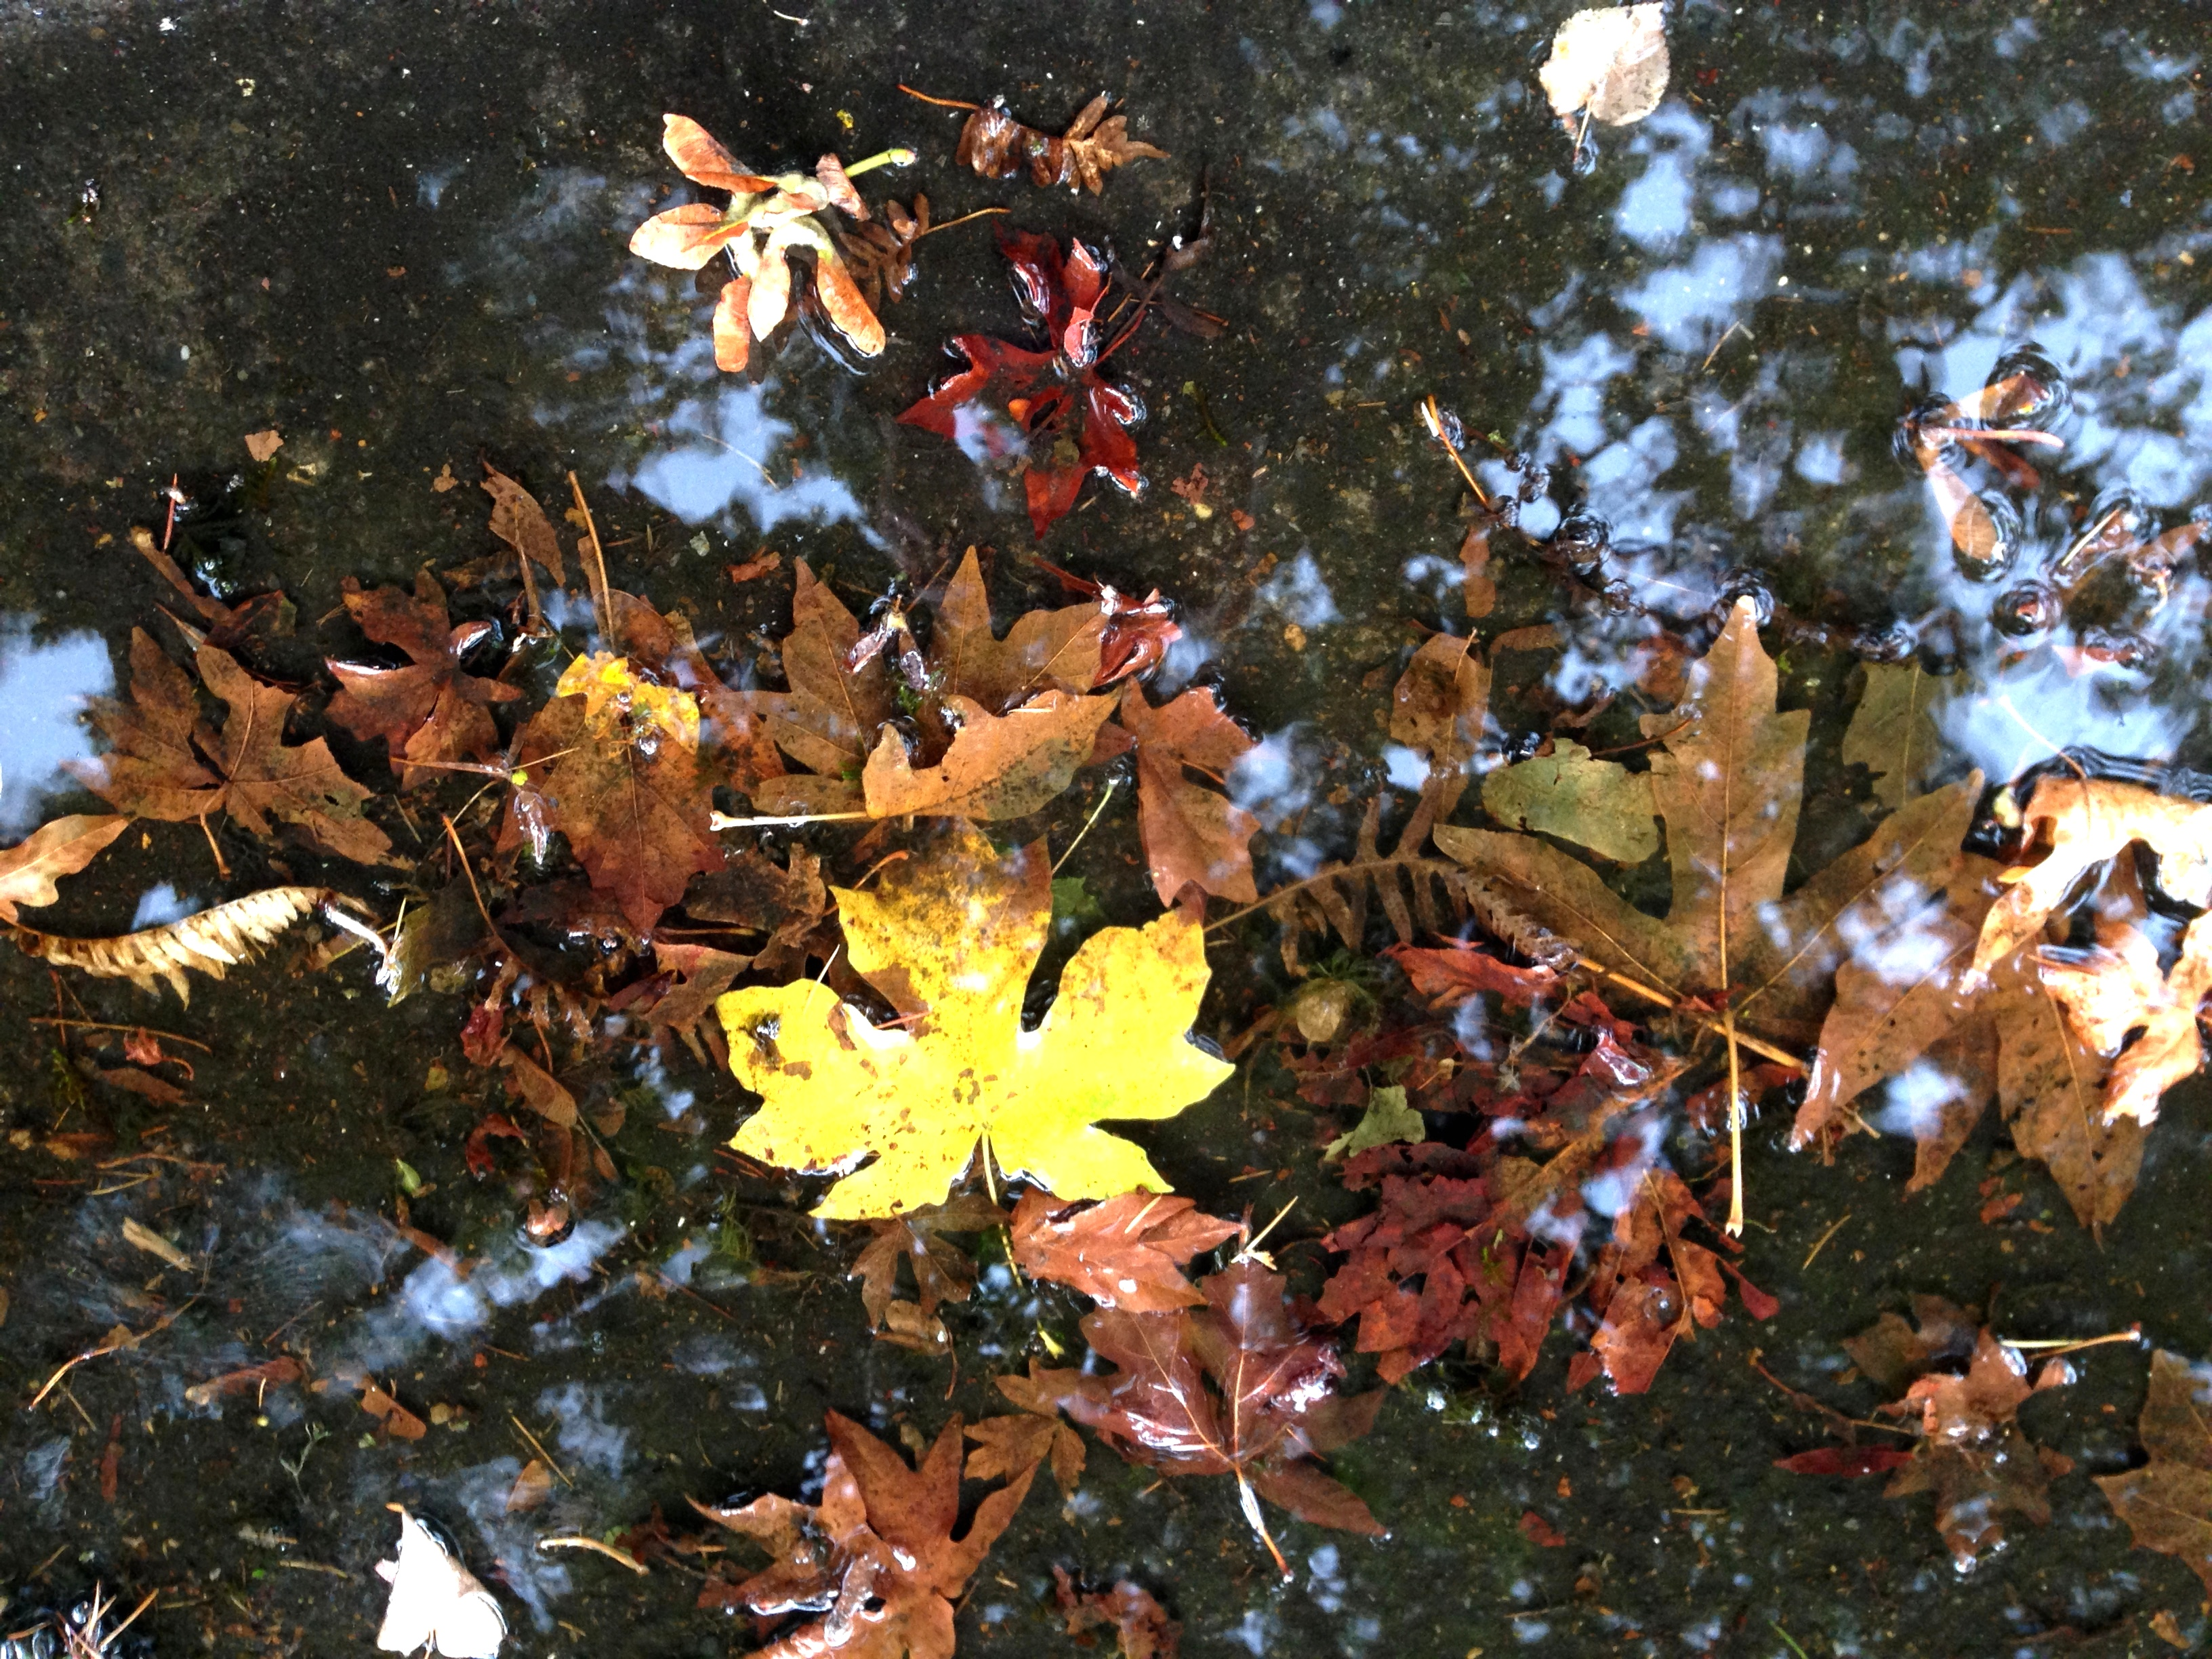 iPhone late sumer, early fall 050